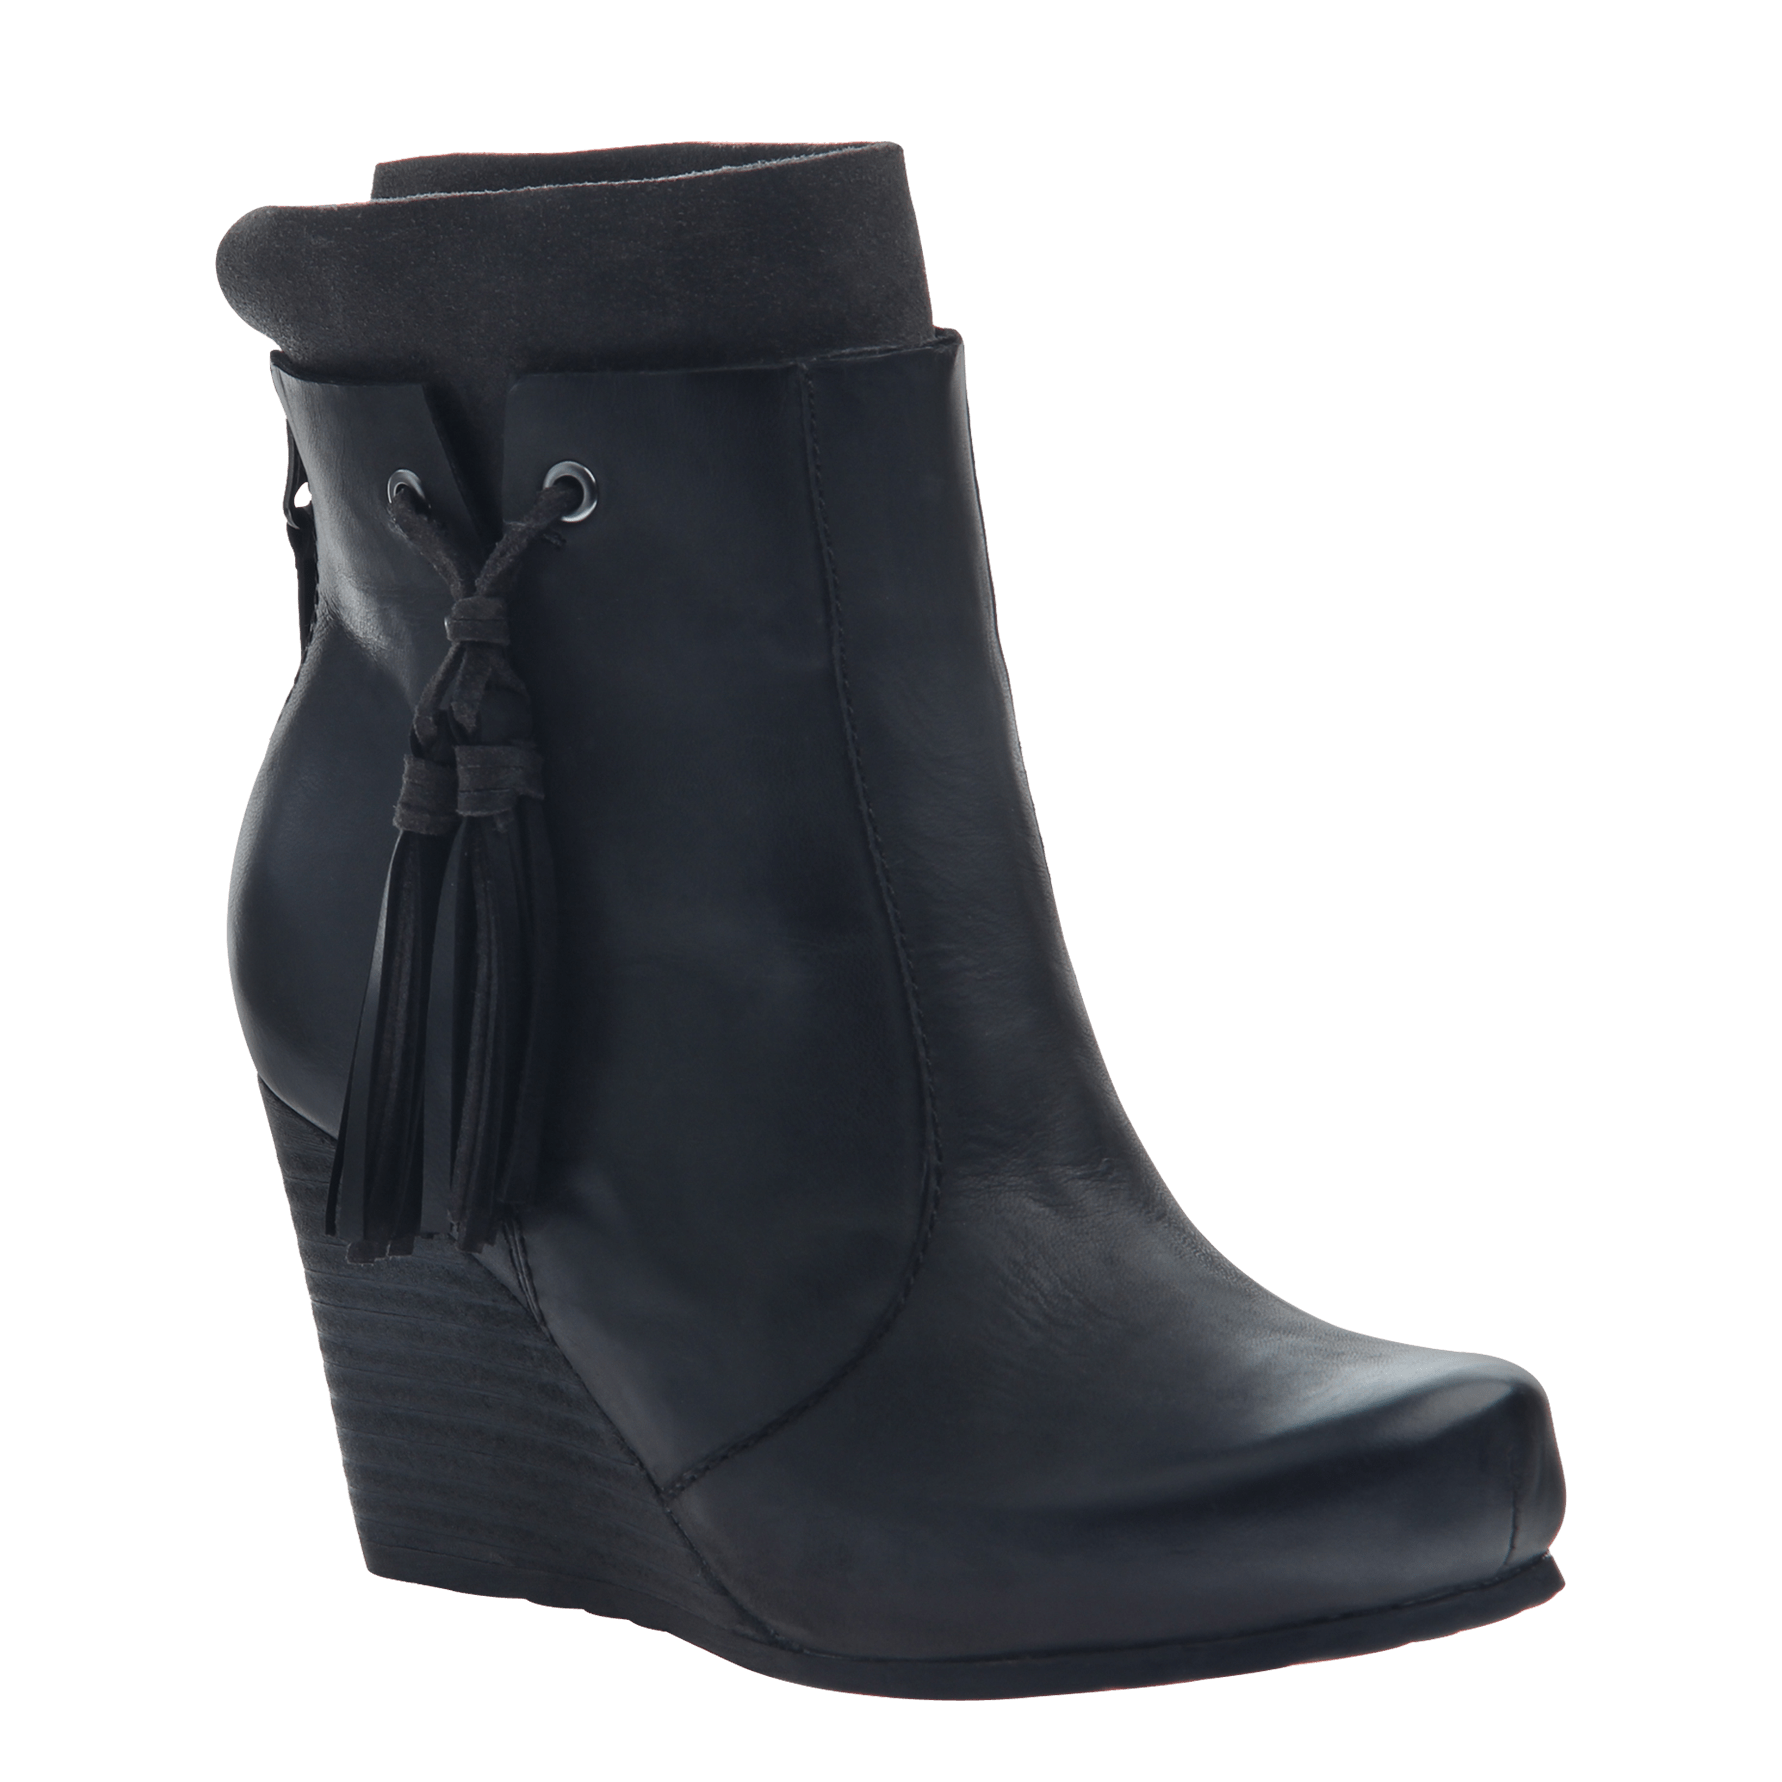 ac7eee247ea VAGARY in BLACK Ankle Boots